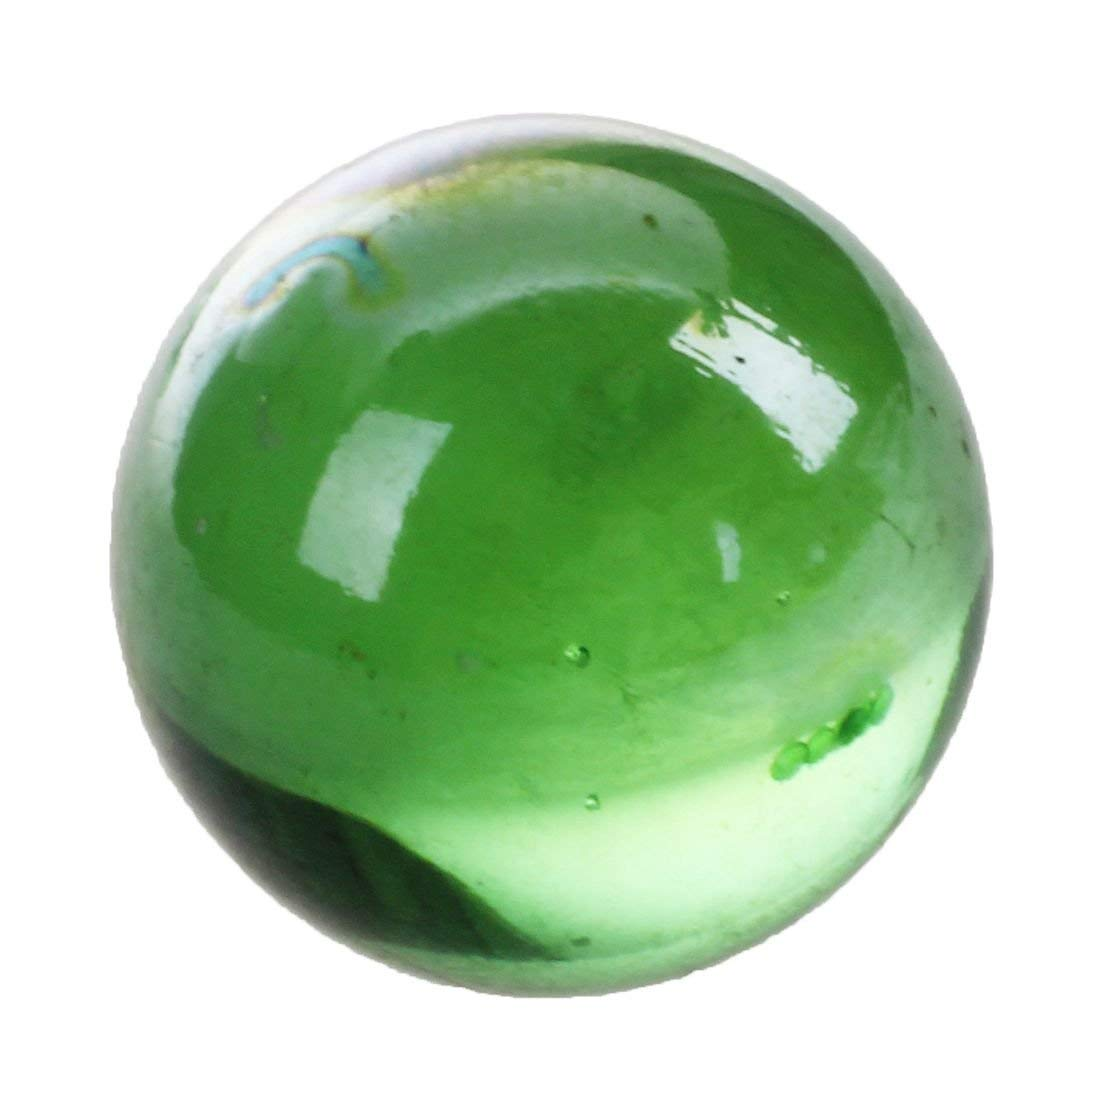 Tcplyn Premium Quality Glass Marbles - 10 Pcs Marbles 16mm Glass Marbles Knicker Glass Balls Decoration Color Nuggets Toy Green by Tcplyn (Image #3)